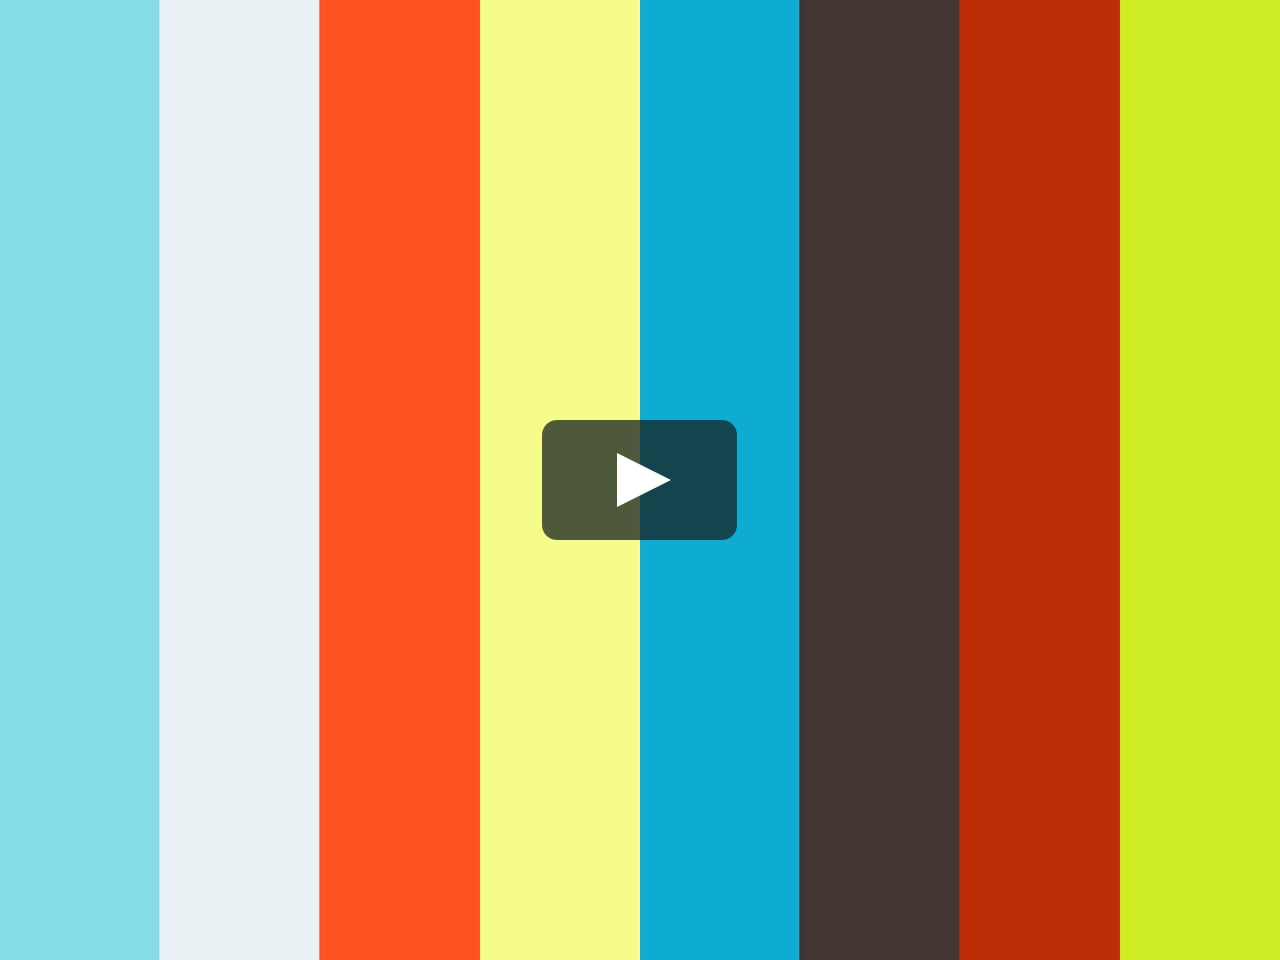 symantec's endpoint protection small business edition on vimeo